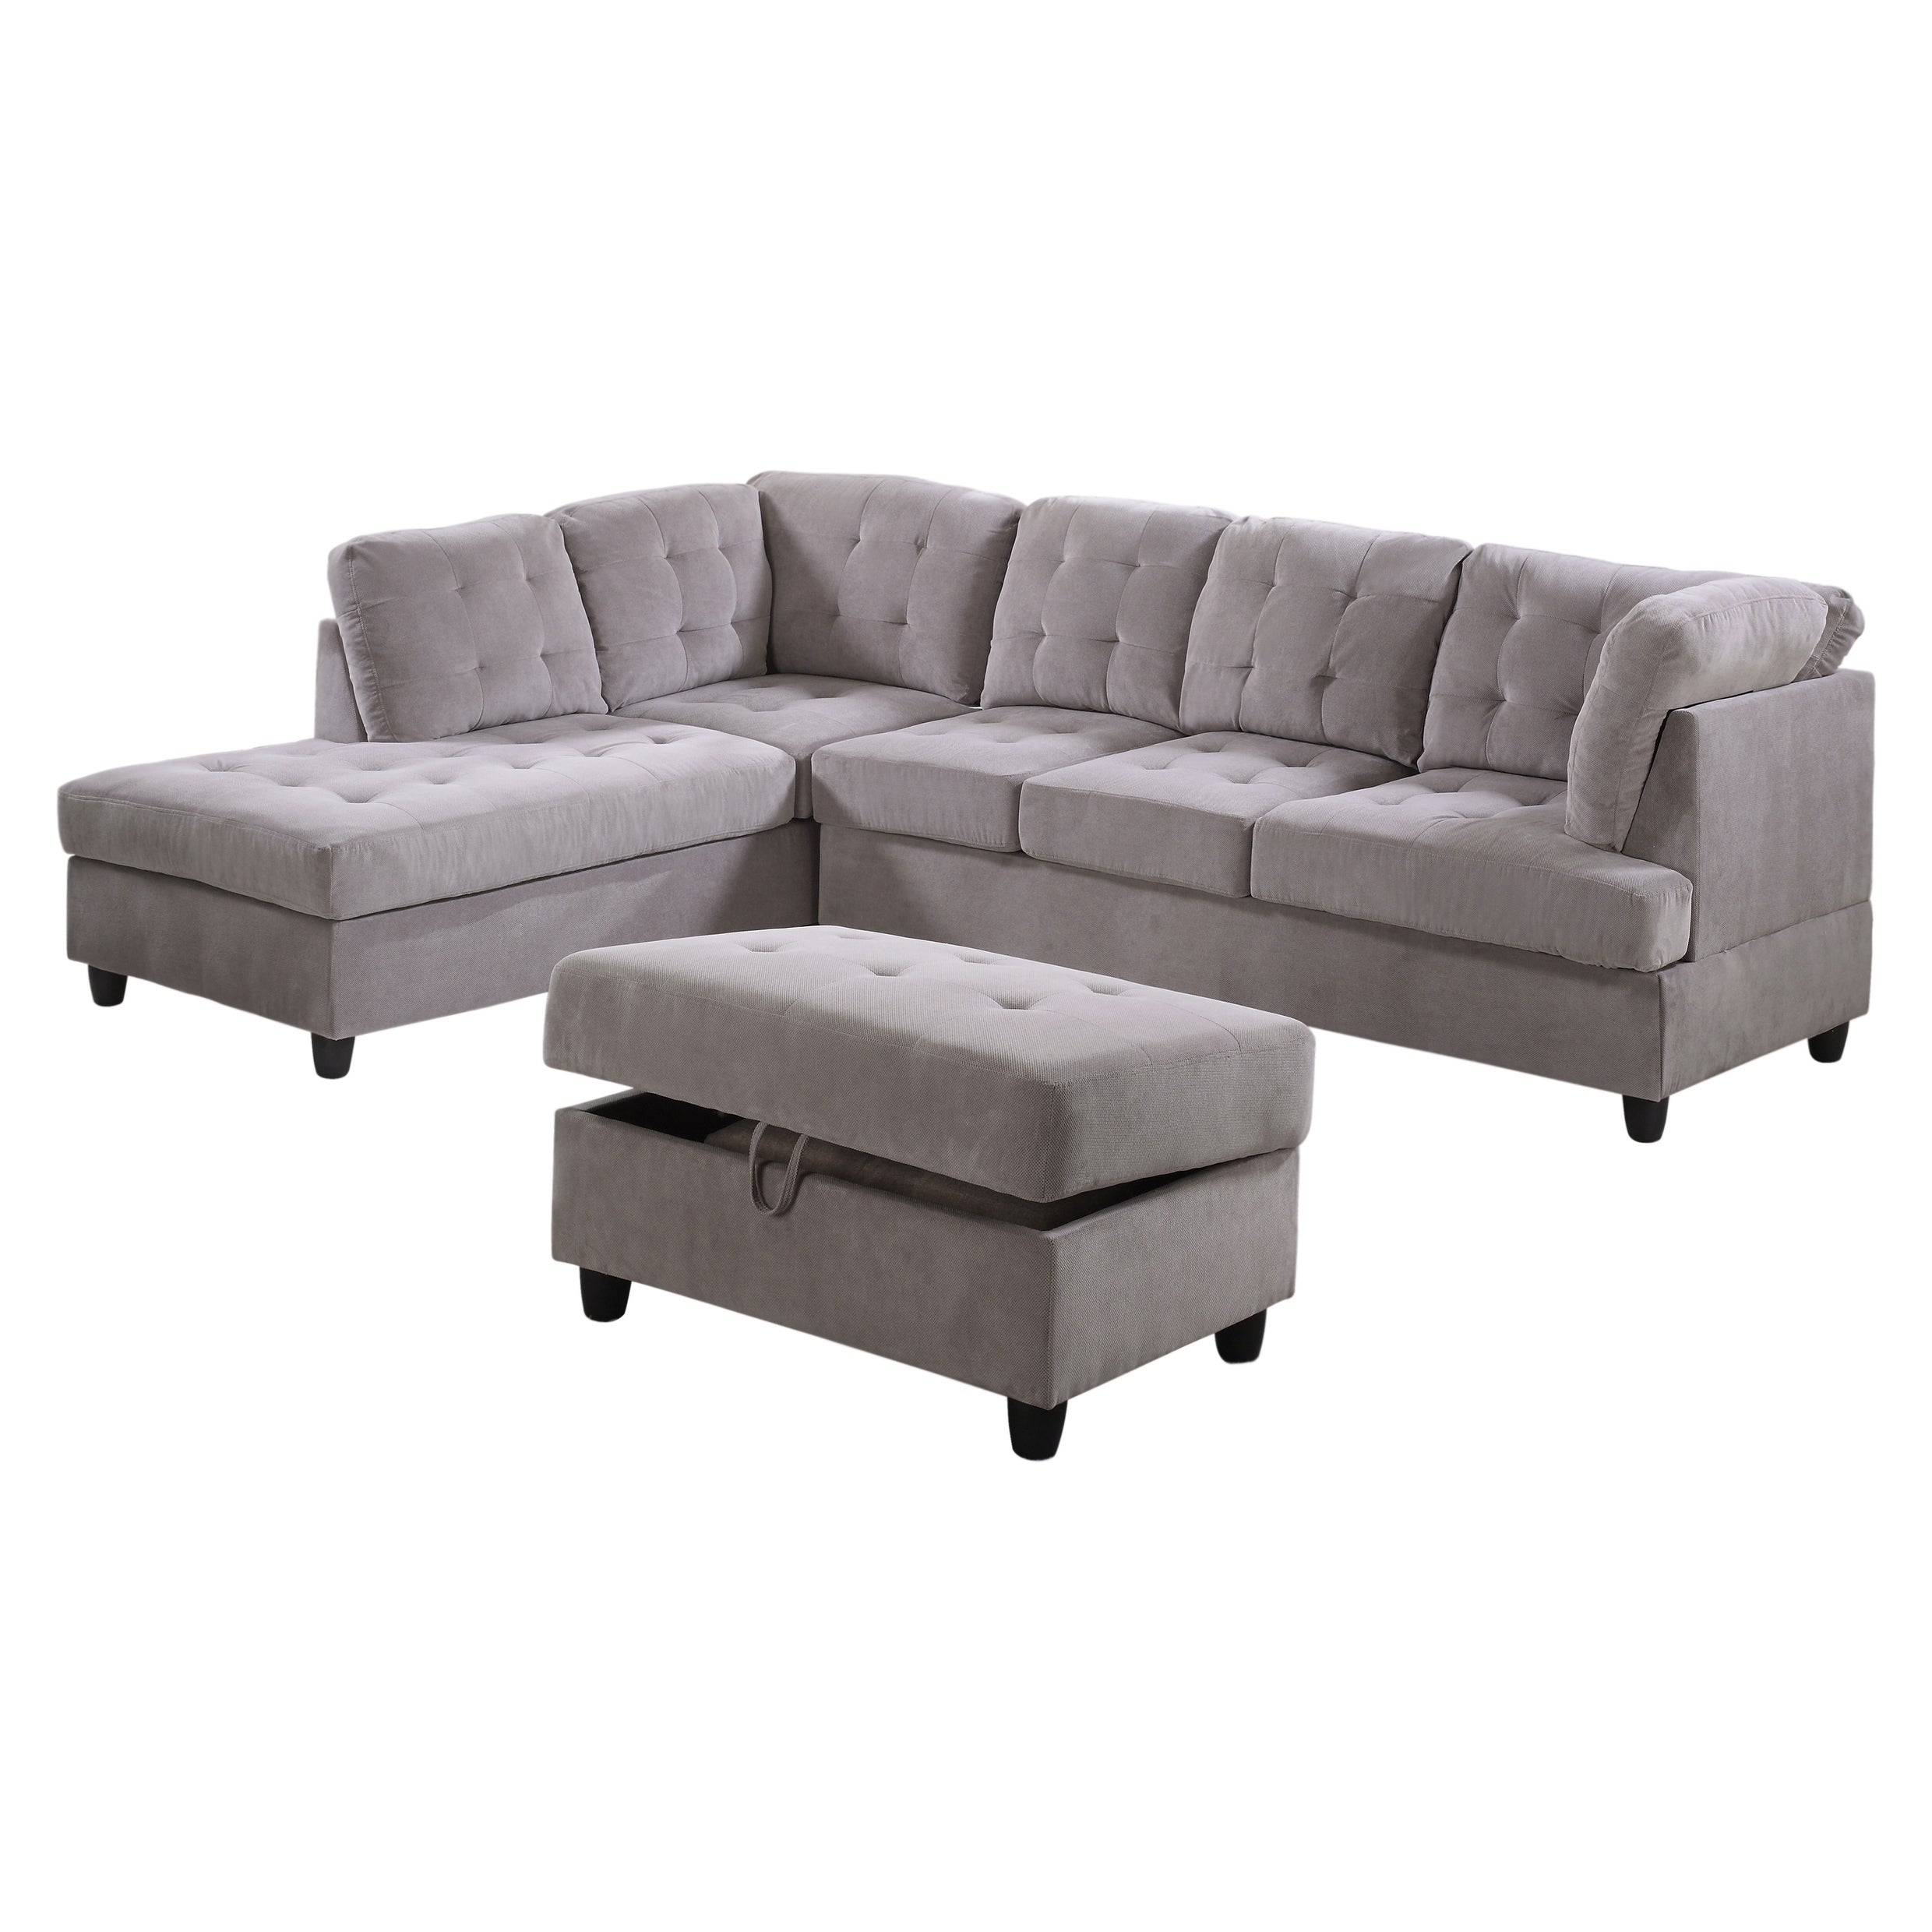 Details about AYCP Furniture Corduroy Sectional Sofa with Storage Ottoman